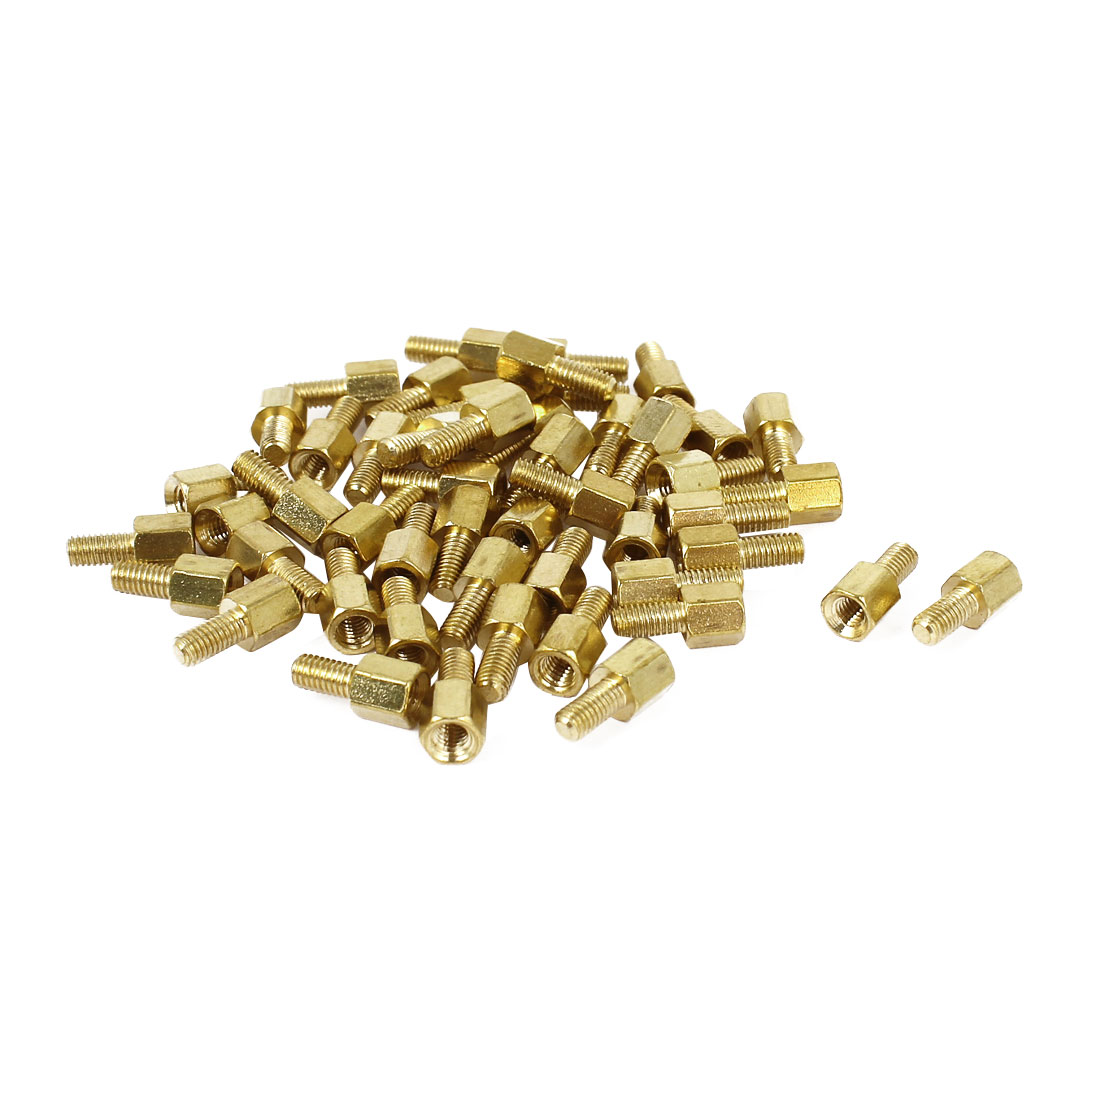 50 Pcs M3x5mm+6mm Male Female Brass Screw PCB Standoffs Hexagonal Spacers